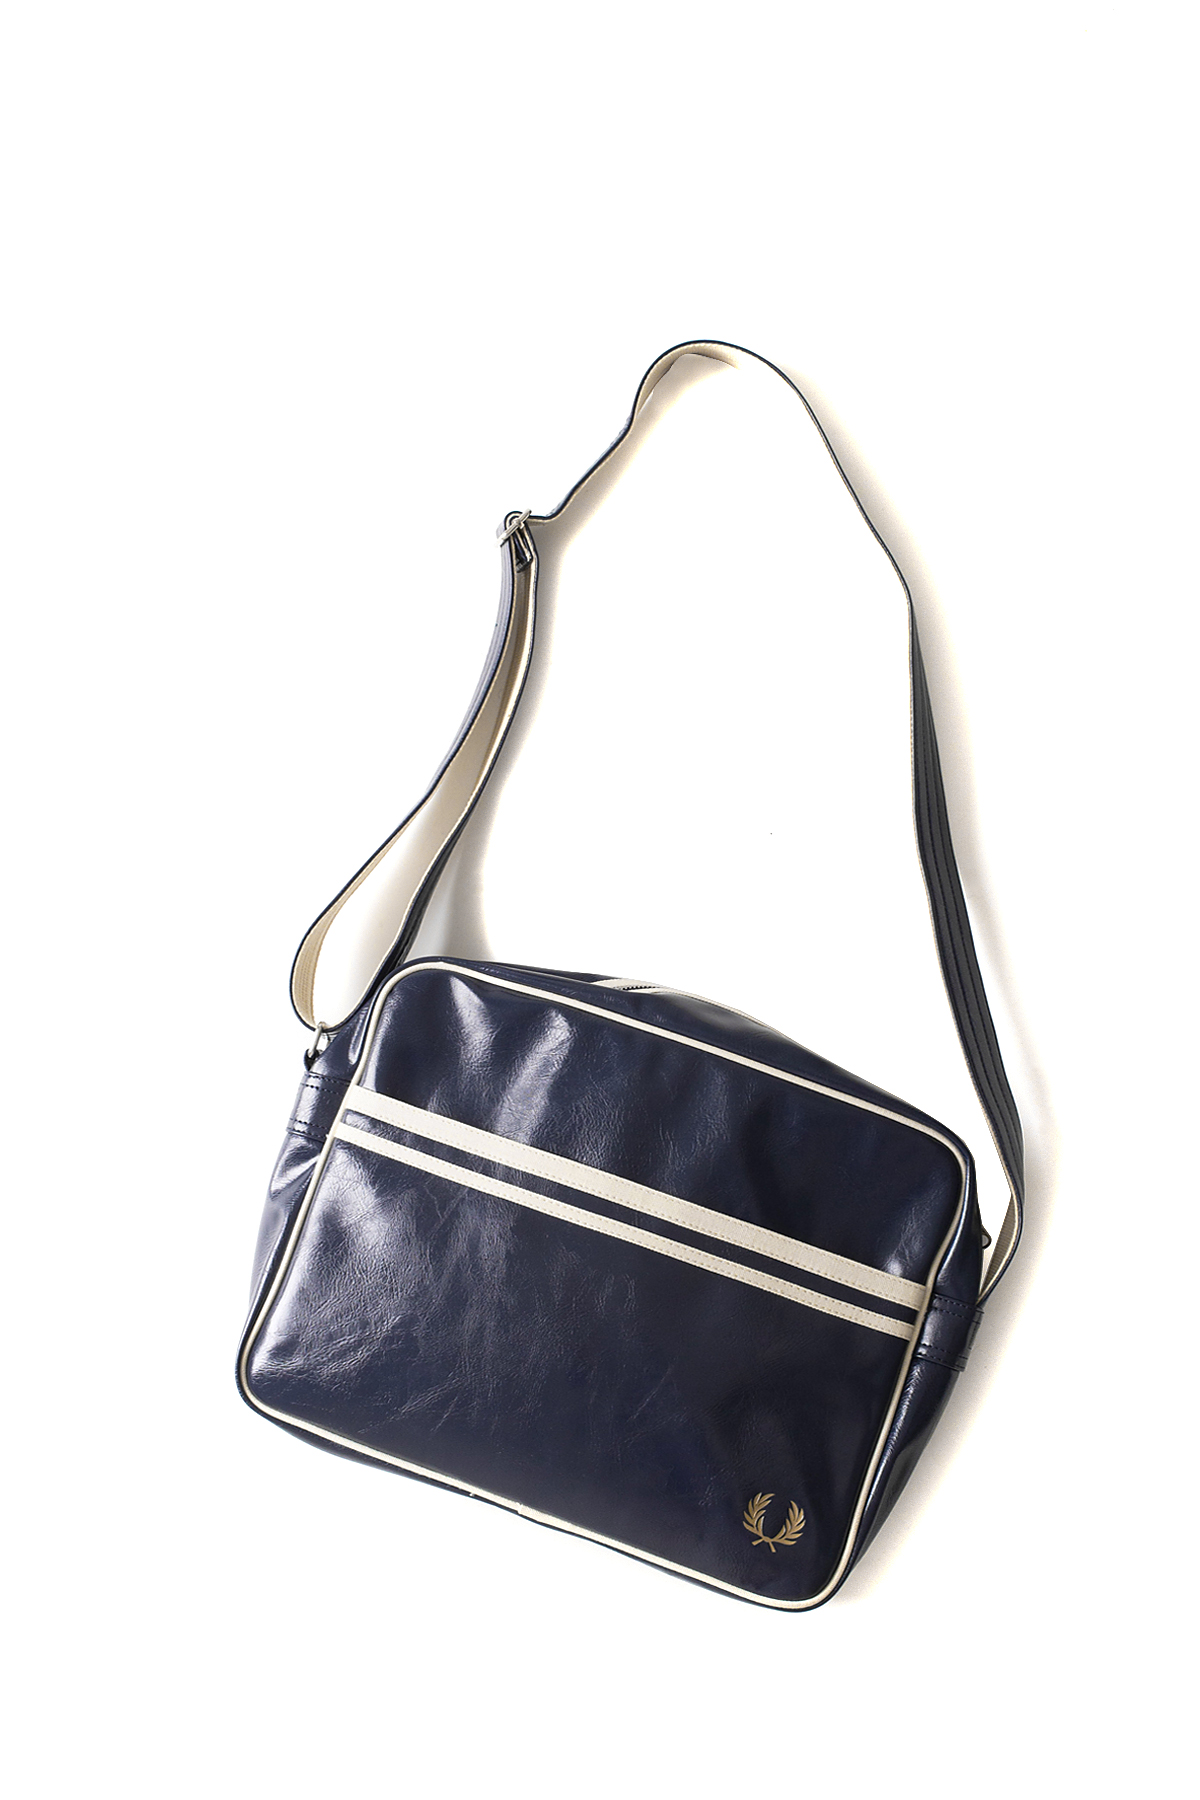 FRED PERRY : Classic Shoulder Bag (Navy / Ecru)